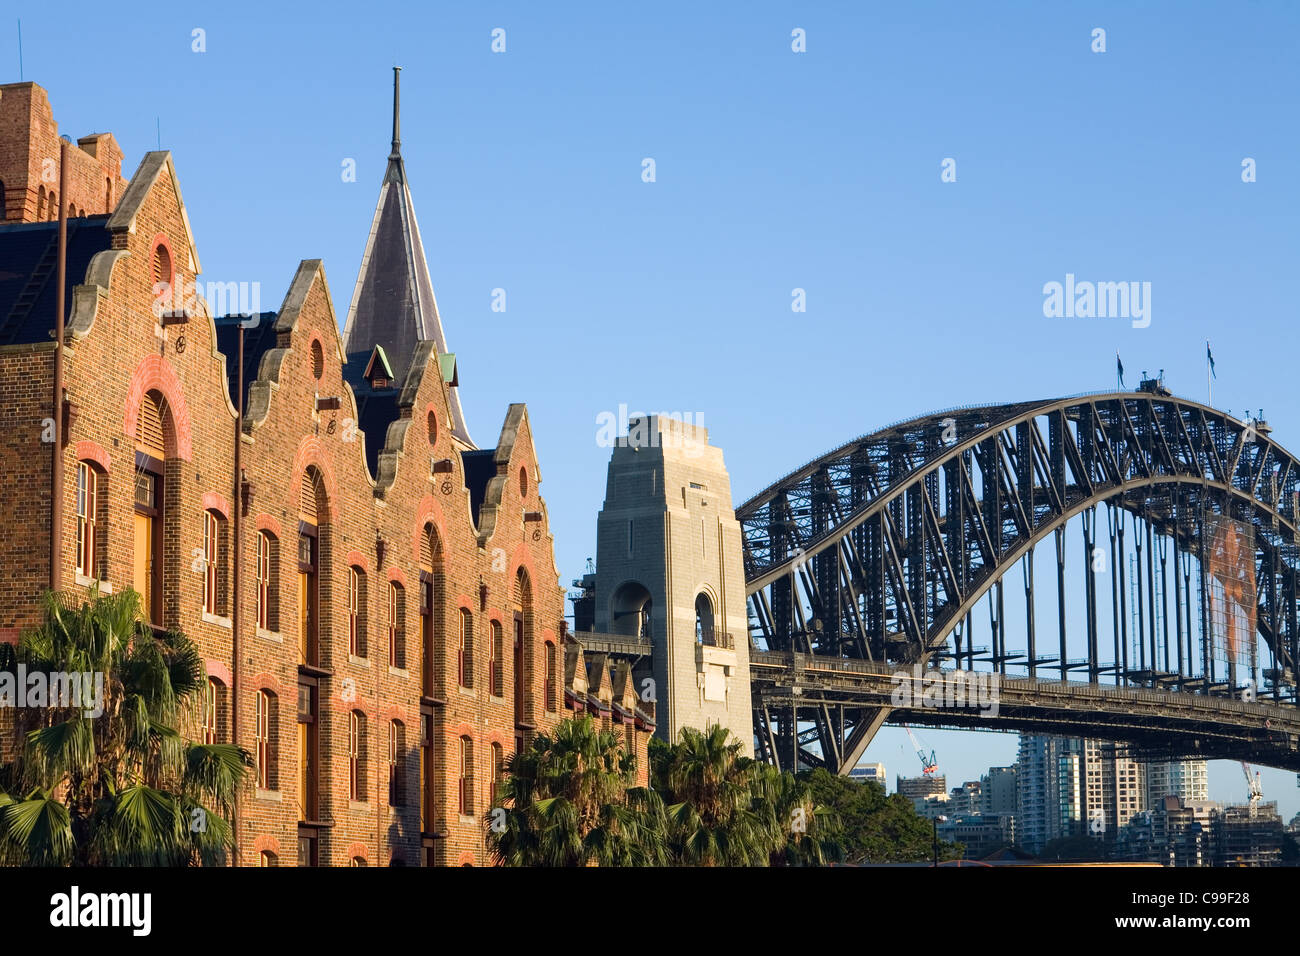 L'architecture de l'Australasian Steam Navigation Co. building et le Harbour Bridge. Sydney, New South Wales, Australia Banque D'Images